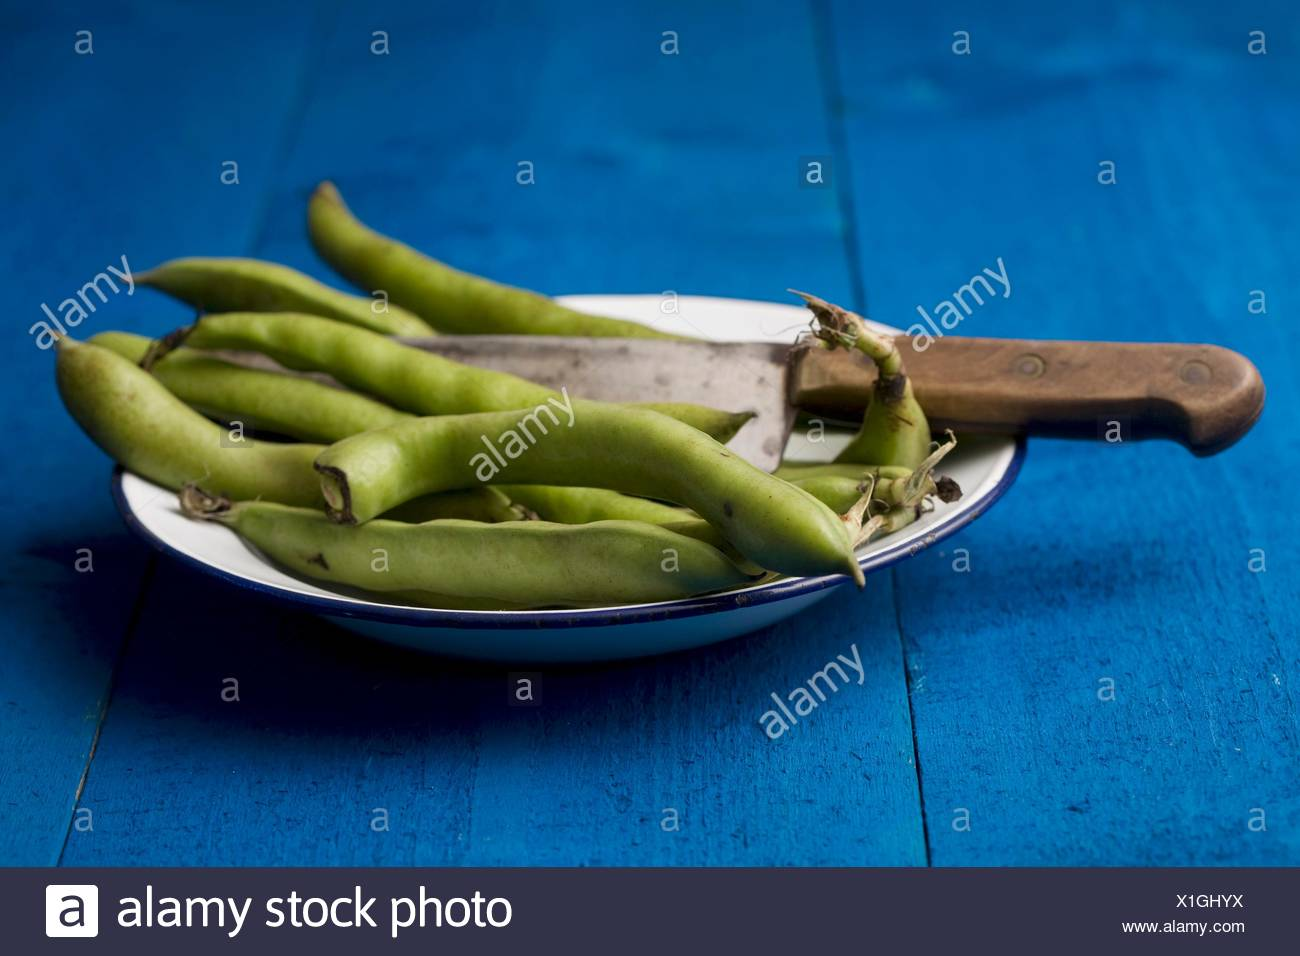 Broad beans - Stock Image